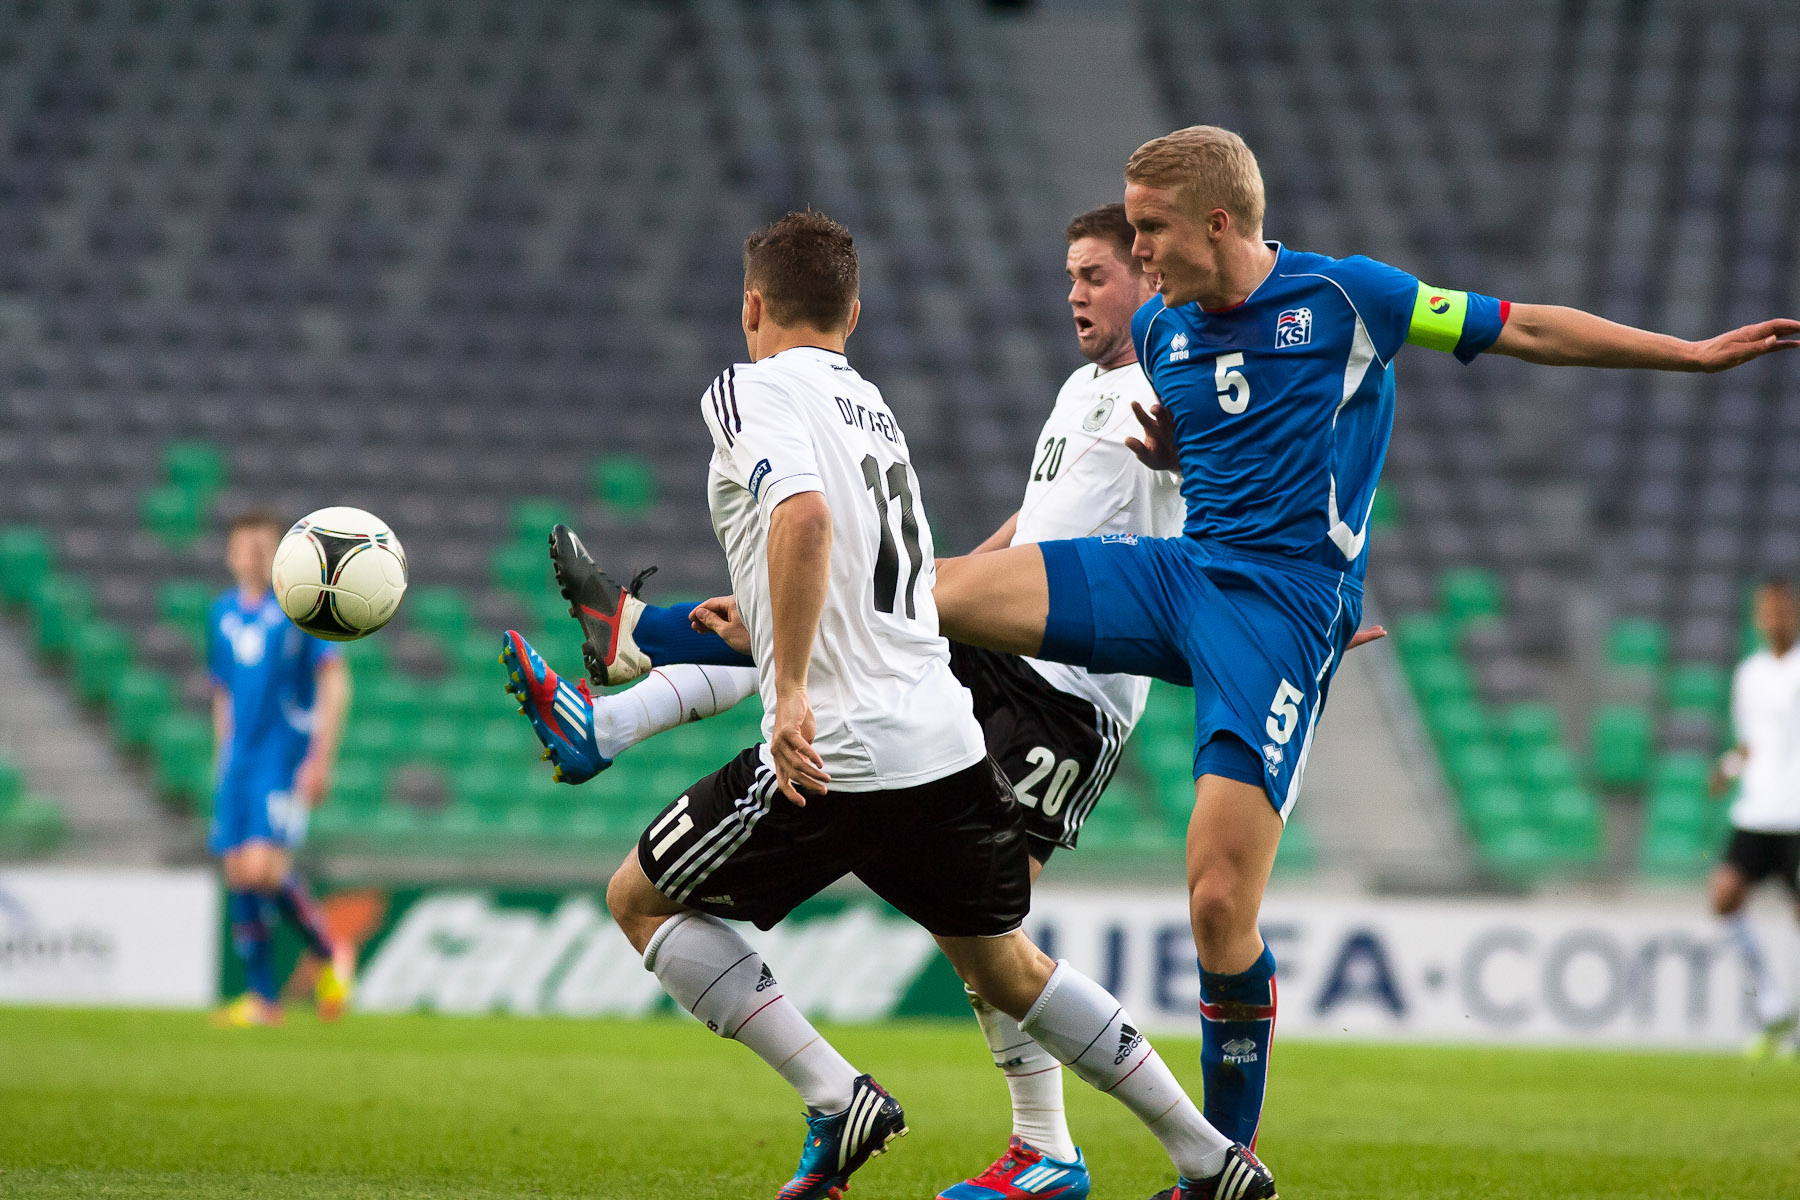 Hjortur Hermannsson of Iceland is challanged by Maximilian Dittgen and Marc Stendera of Germany during the UEFA U-17 European Championship final tournament group match between Germany and Iceland at the SRC Stozice Stadium in Ljubljana, Slovenia, May 7, 2012.